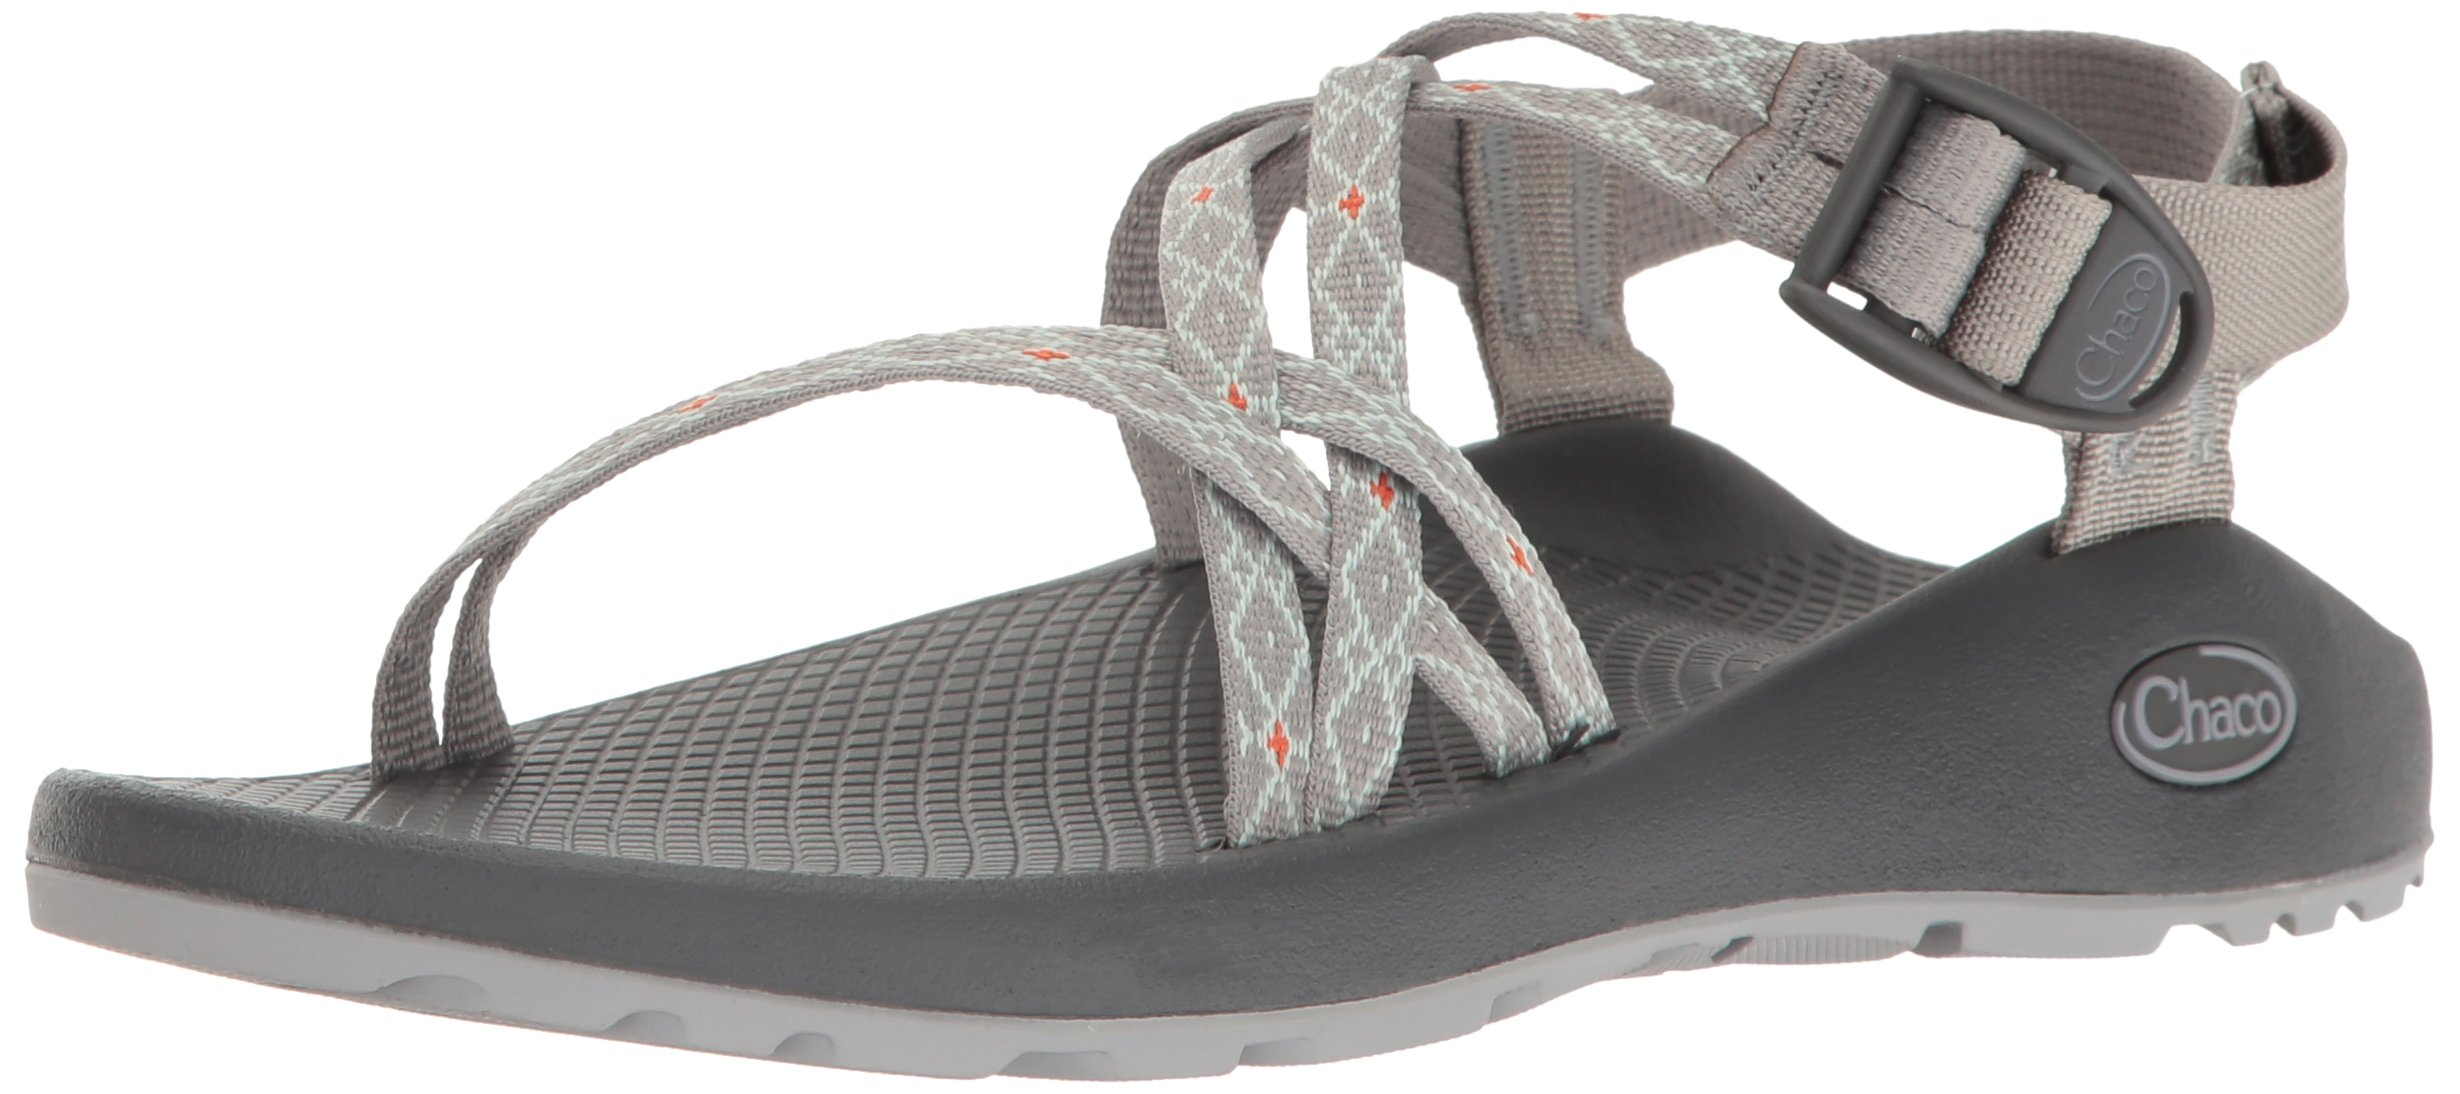 Chaco Women's ZX1 Classic Athletic Sandal, Vintage Alloy, 9 M US